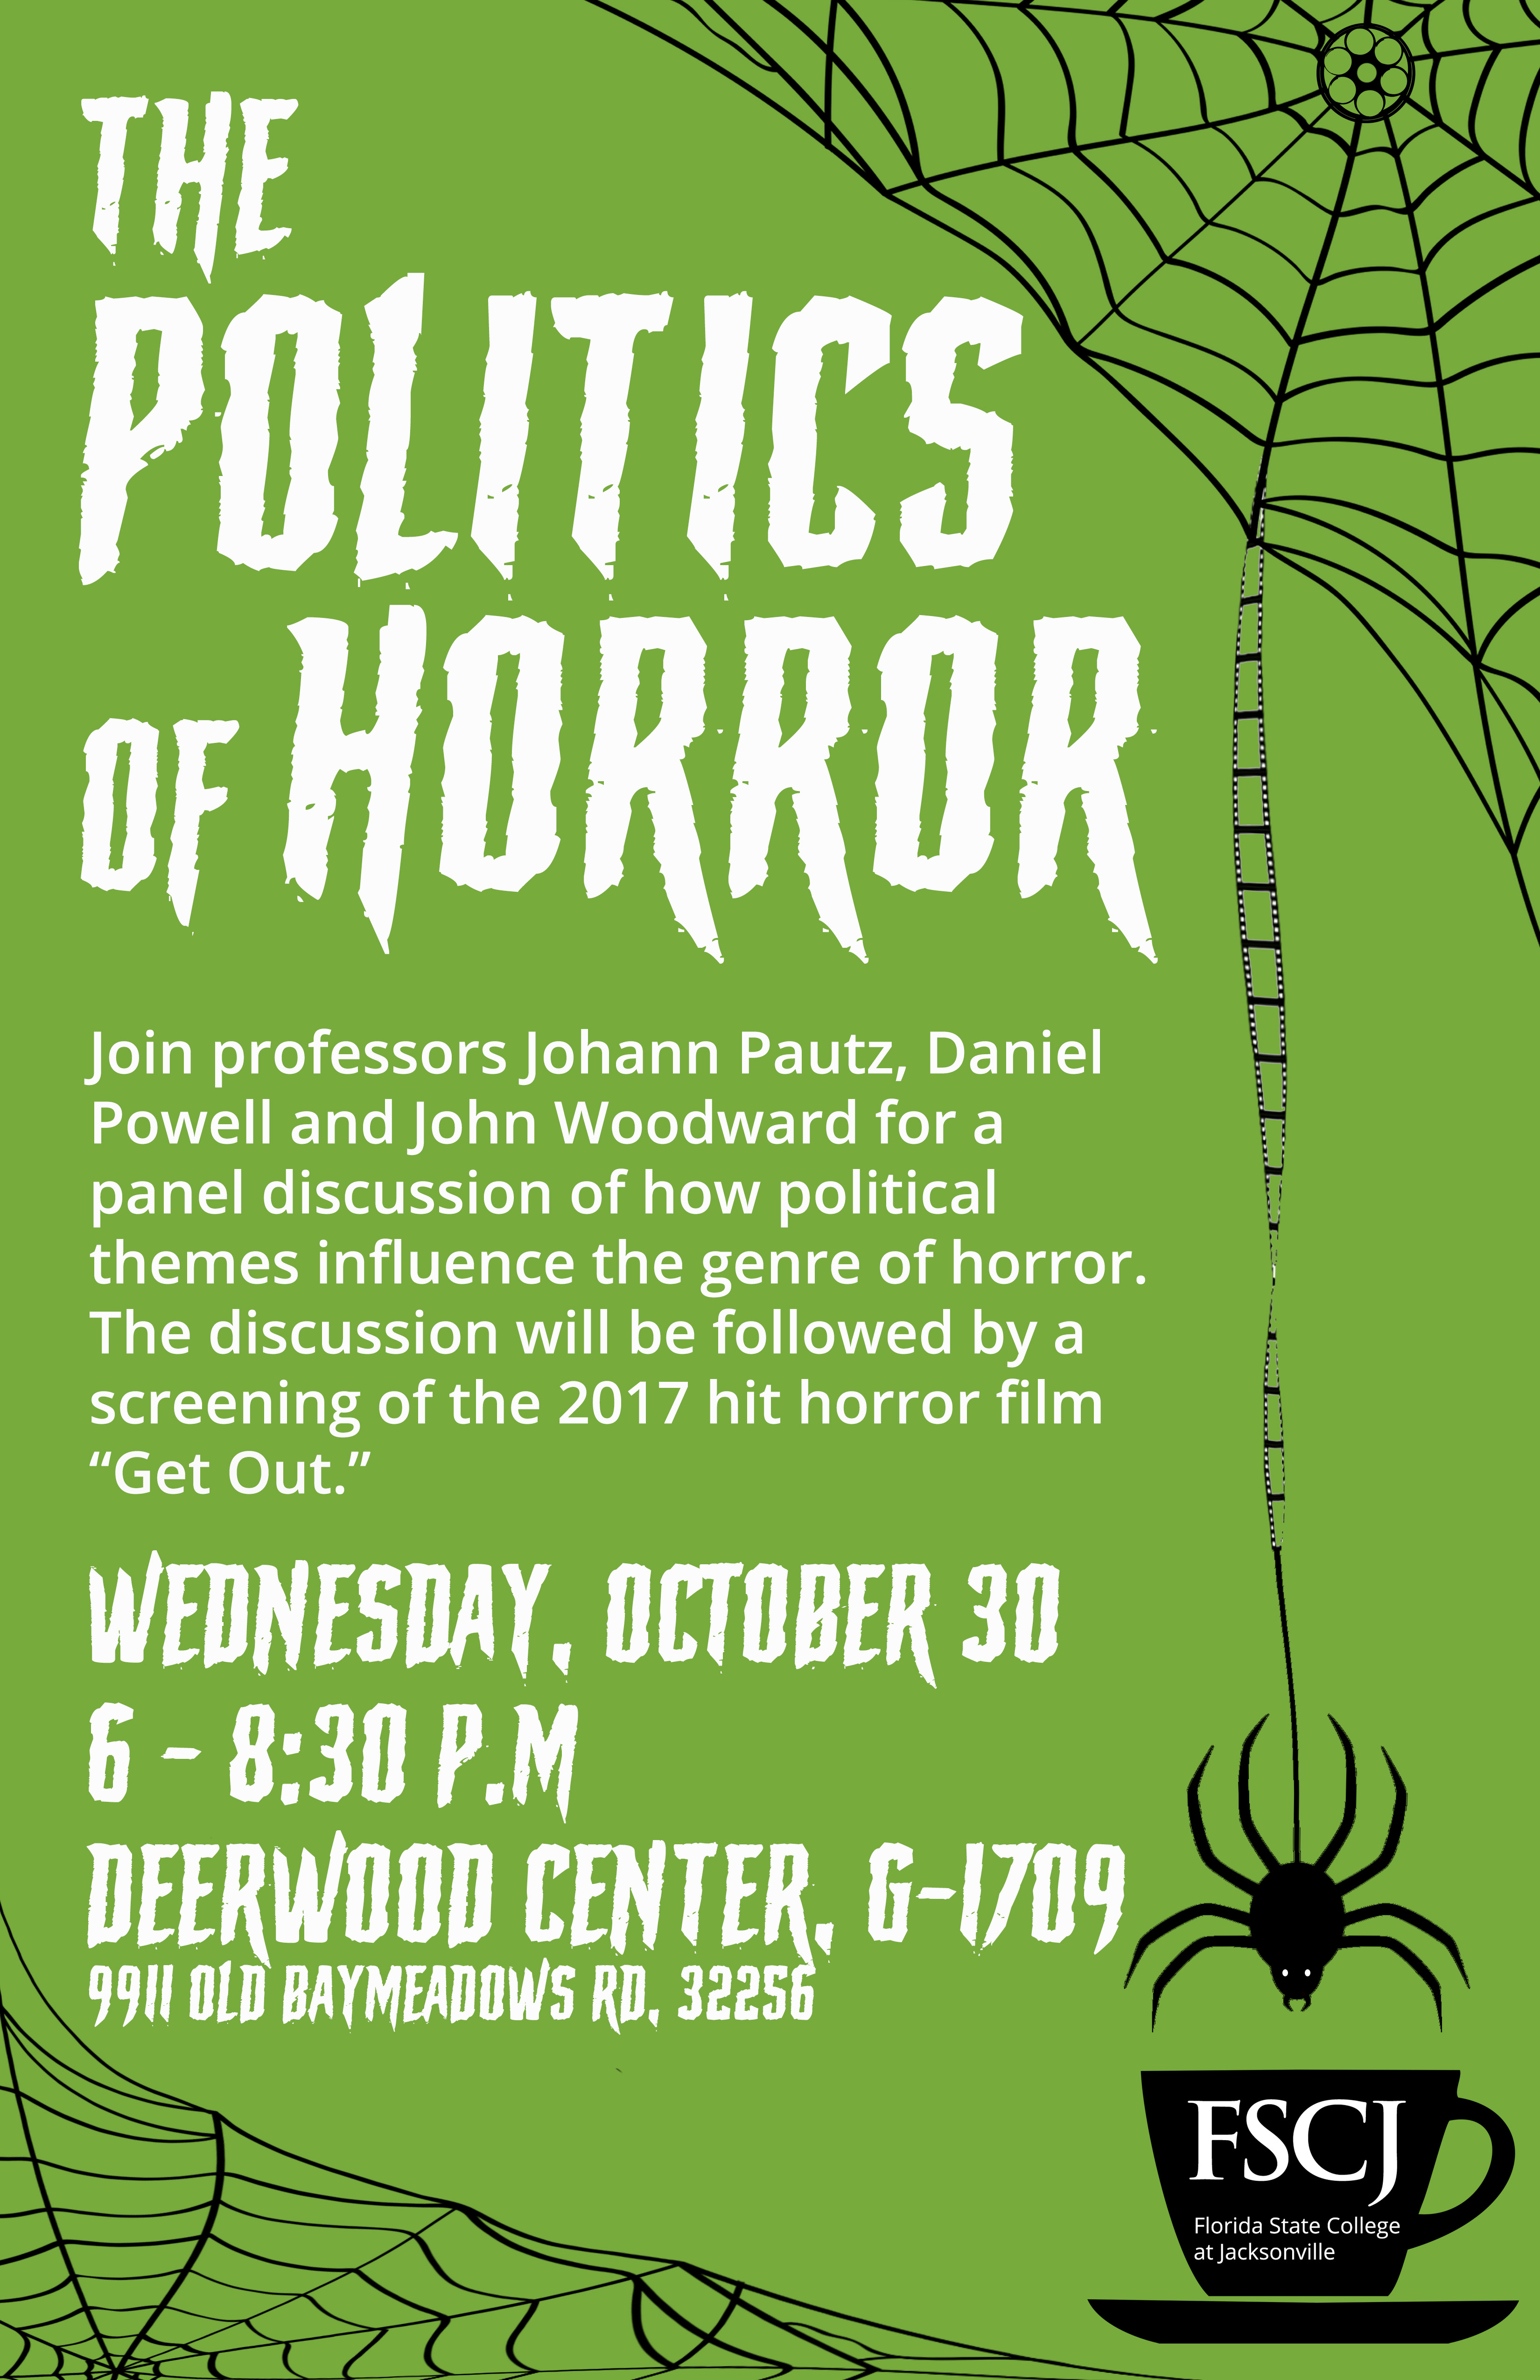 The Politics of Horror (featuring a screening of Get Out)